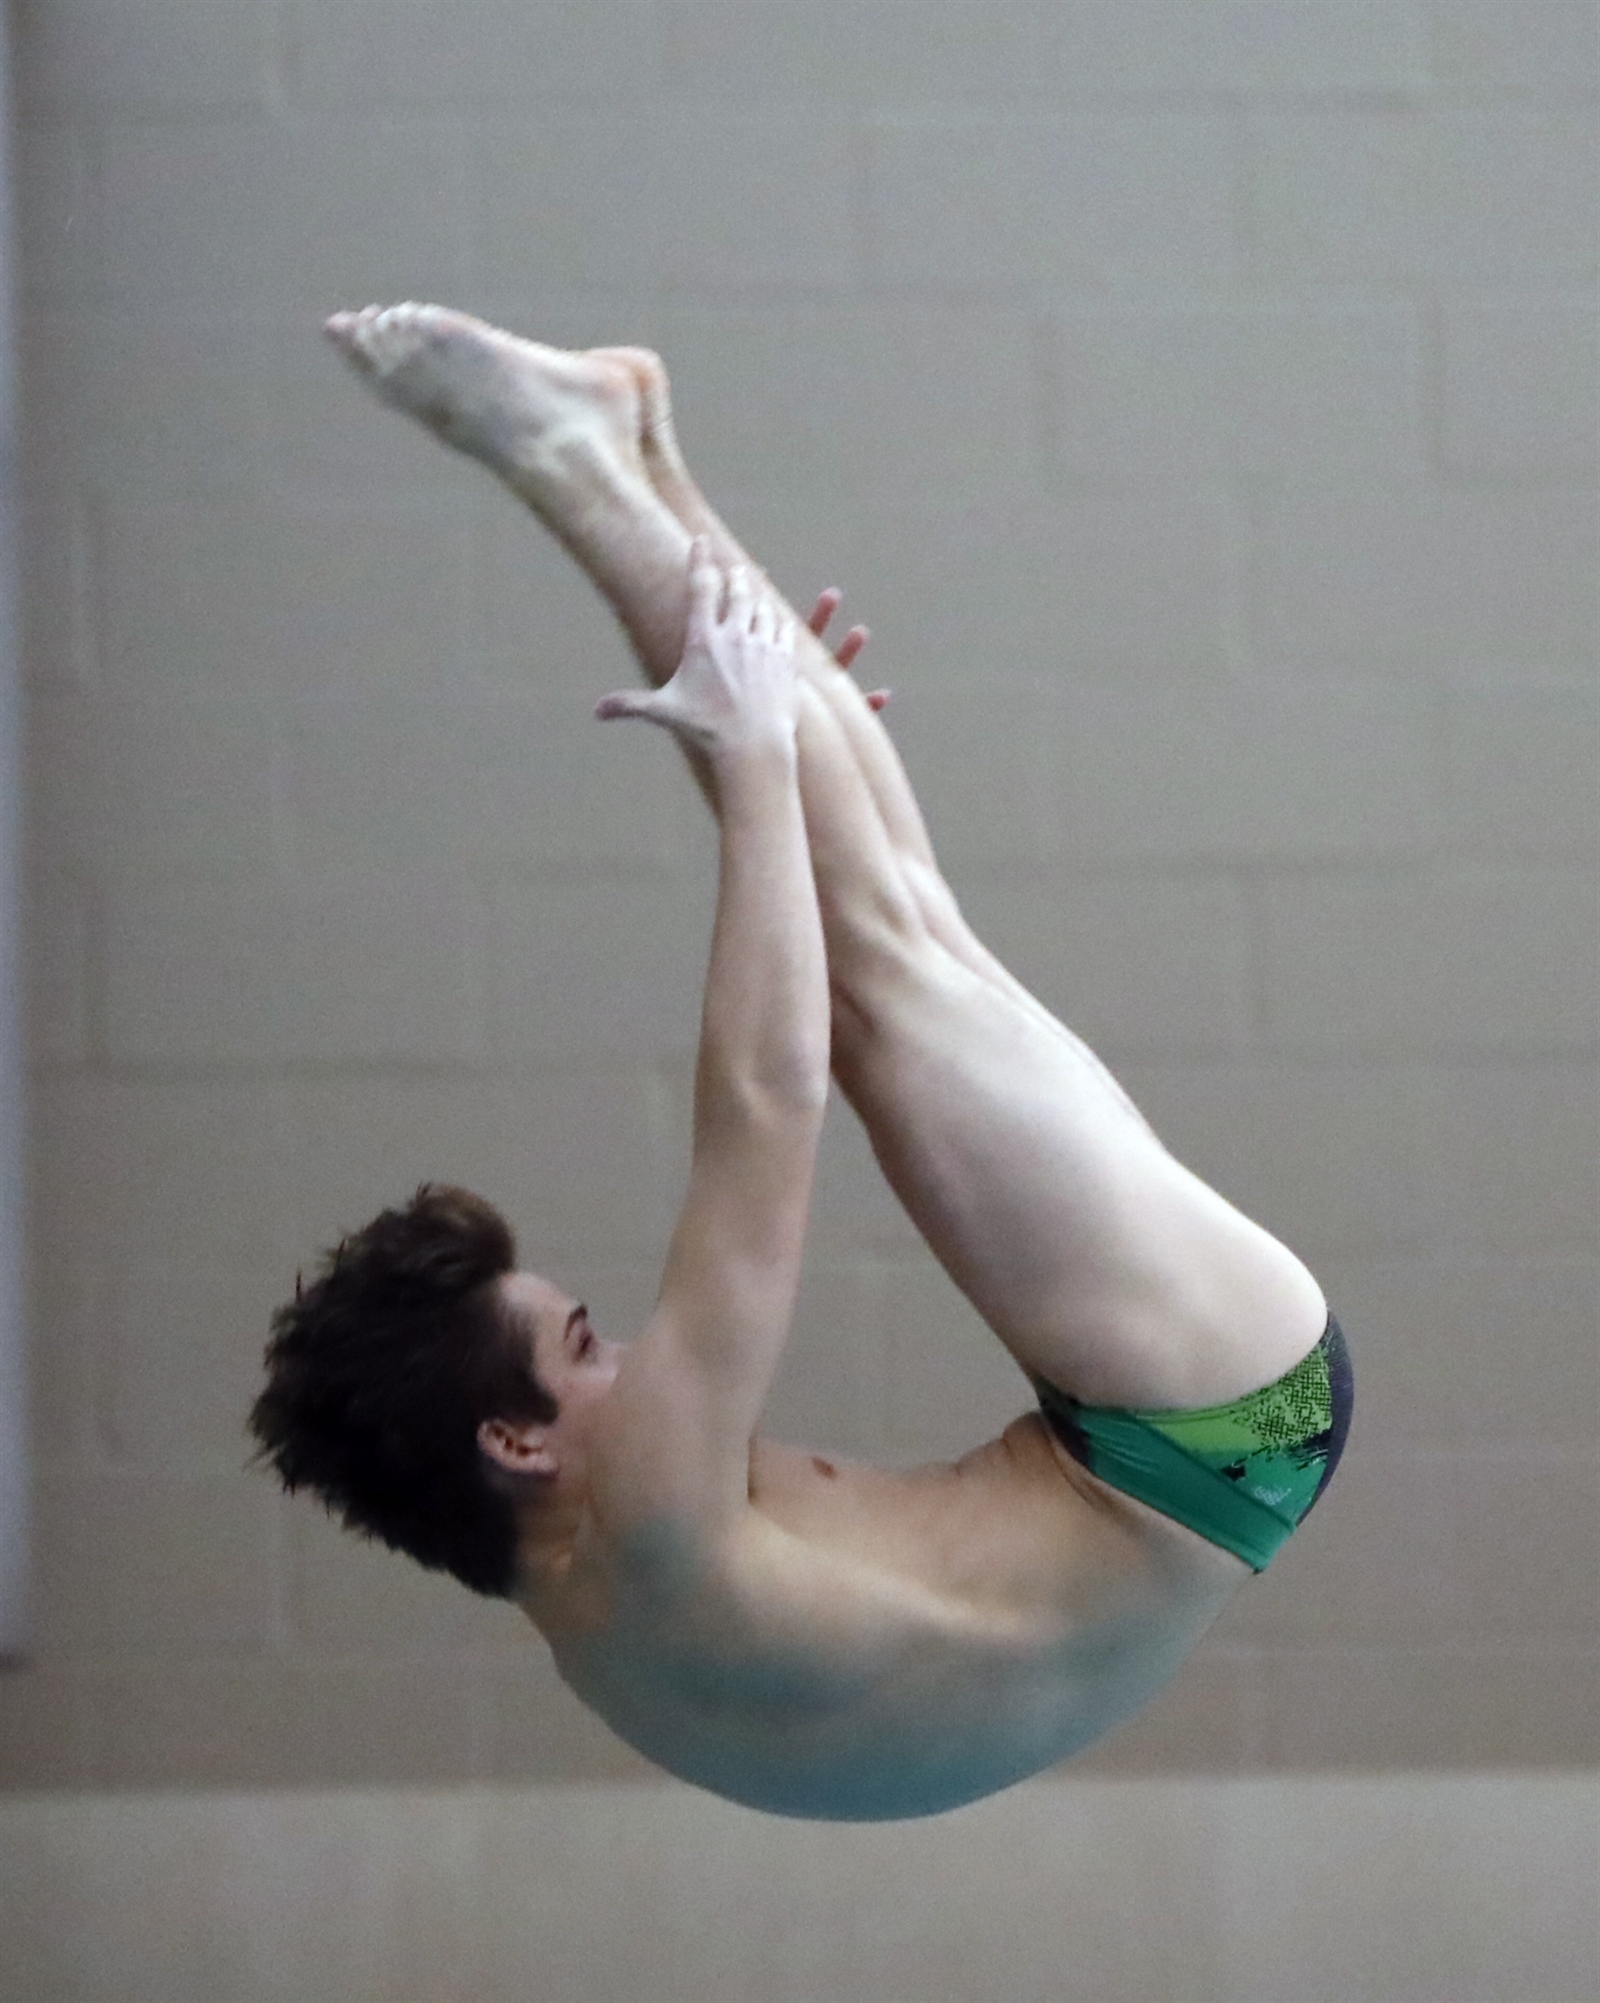 Casey Rosenski from Lake Shore high school, dives during the Section VI Class Meet Diving championships at Maryvale High School on Friday, Feb. 3, 2017. (Harry Scull Jr./Buffalo News)